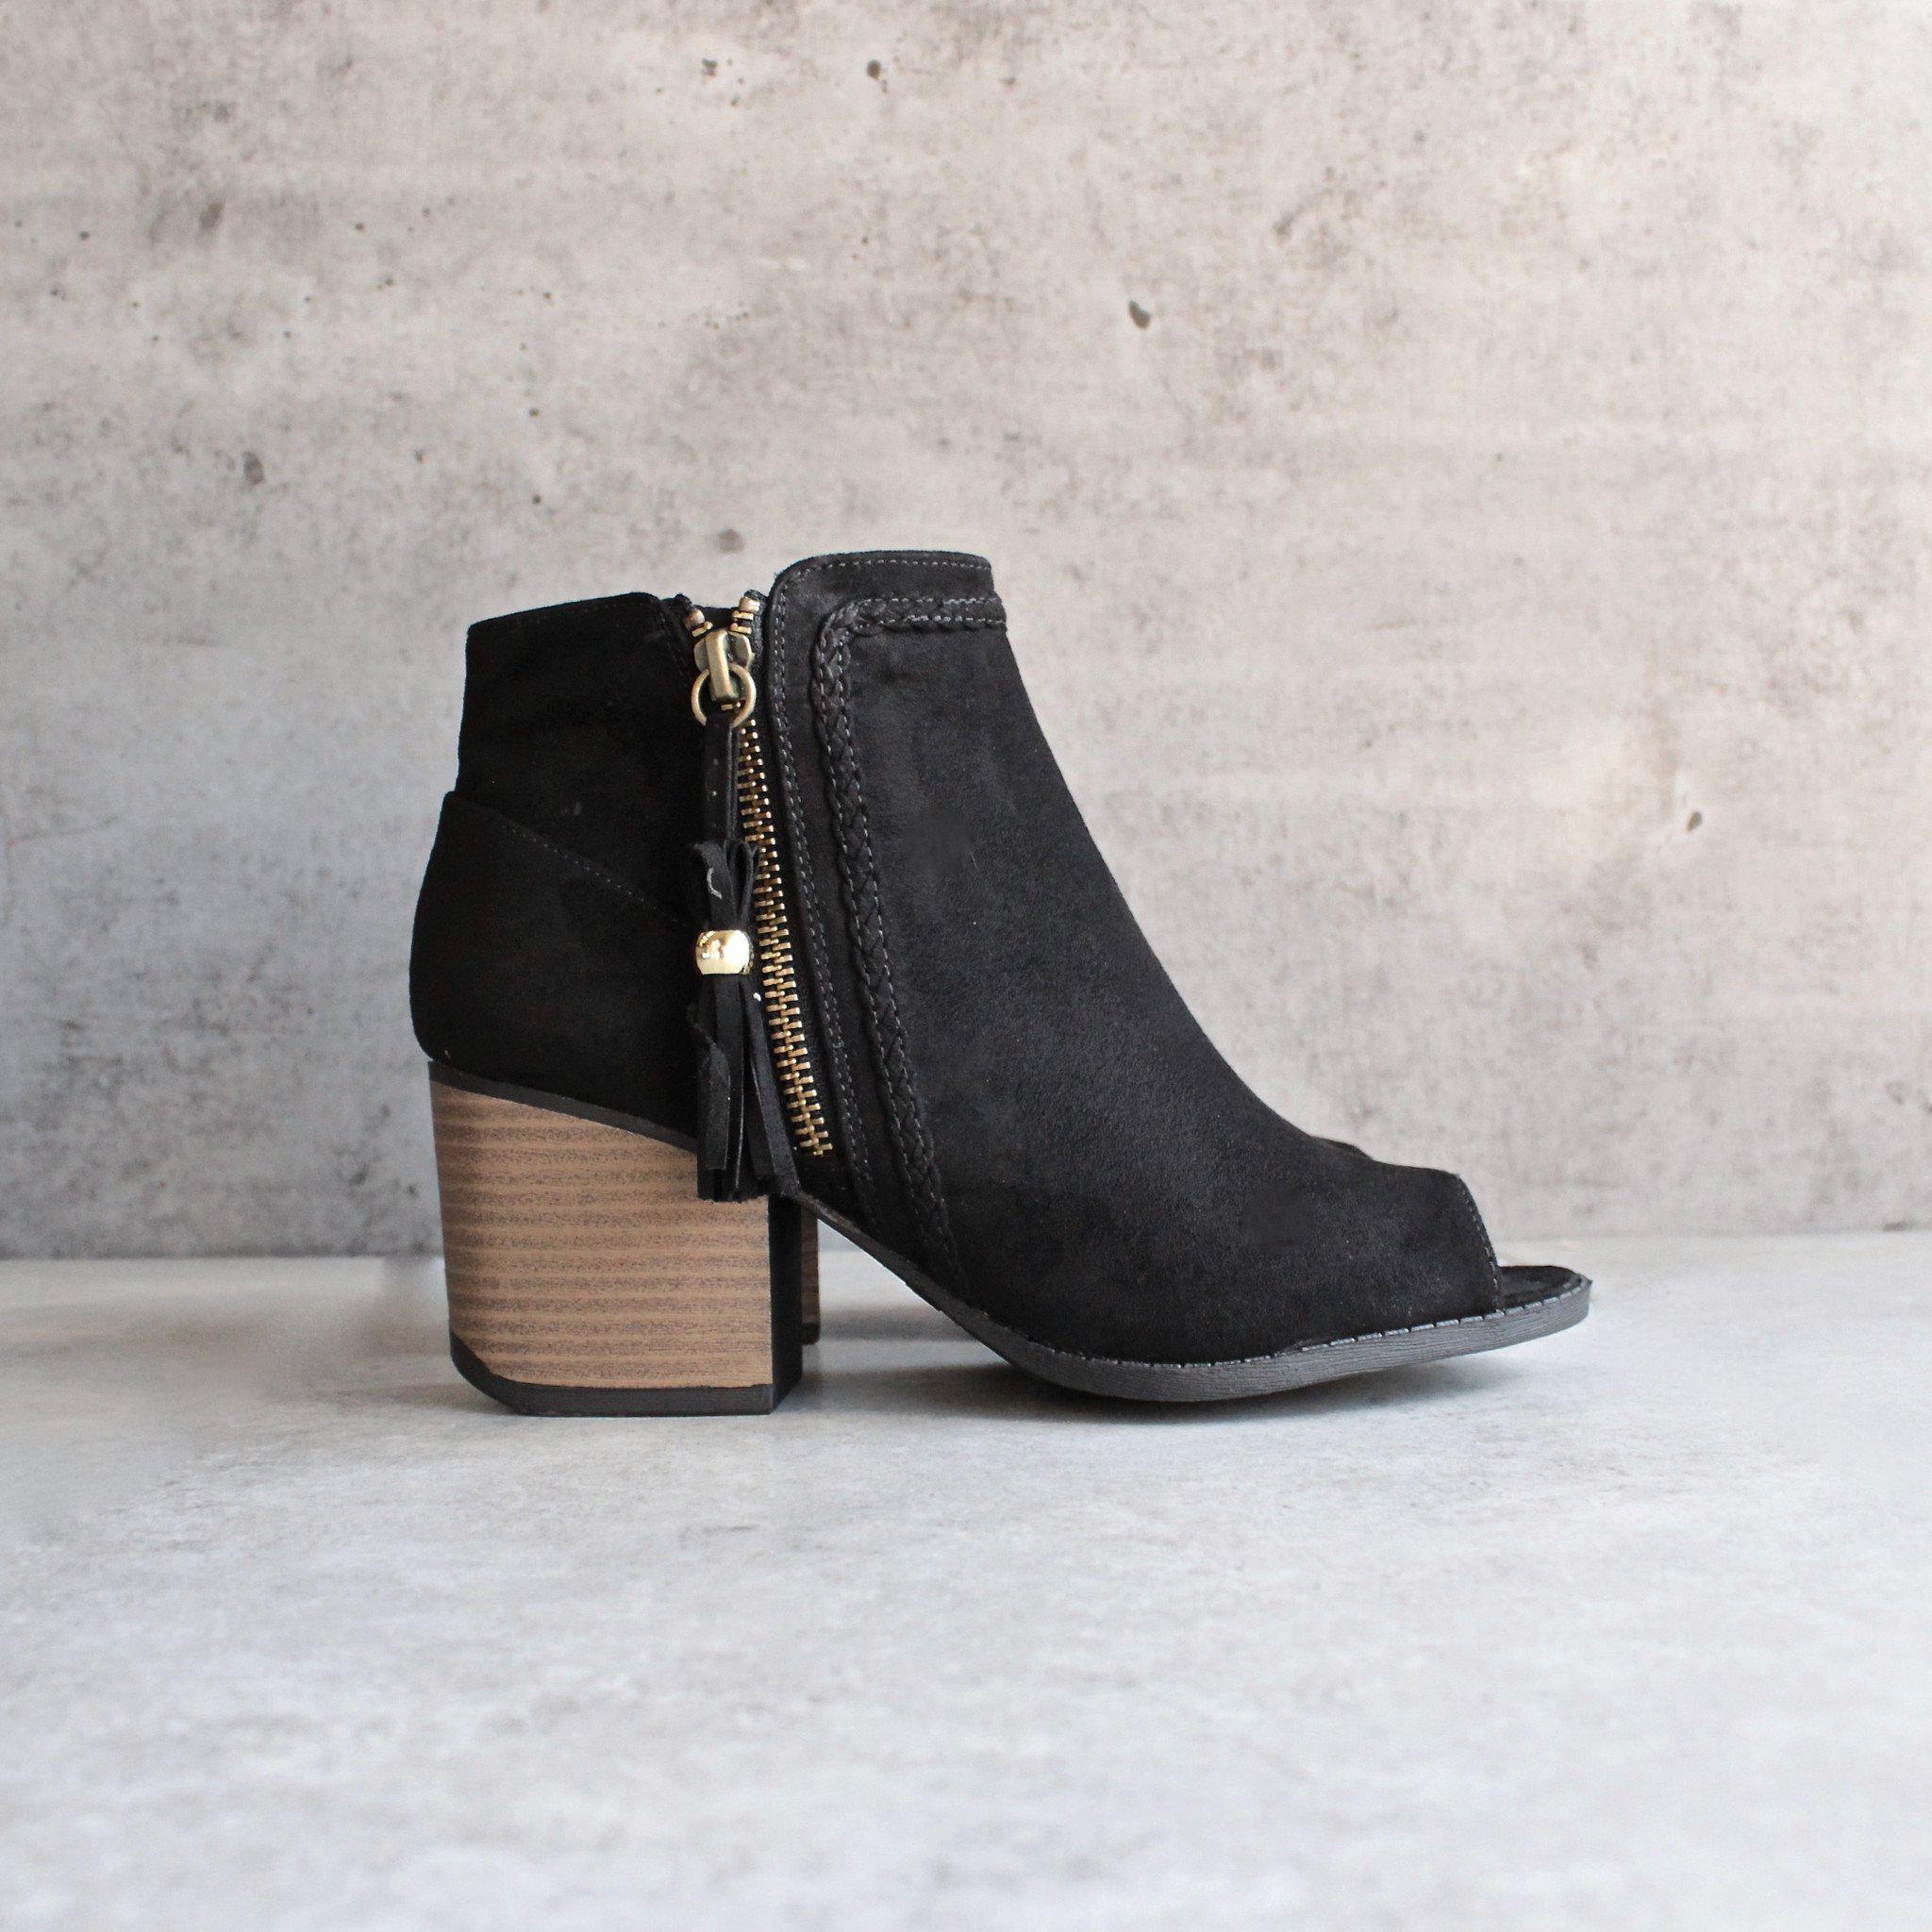 b77f06483fc2 final sale - vegan suede tassel block heeled ankle boots - black